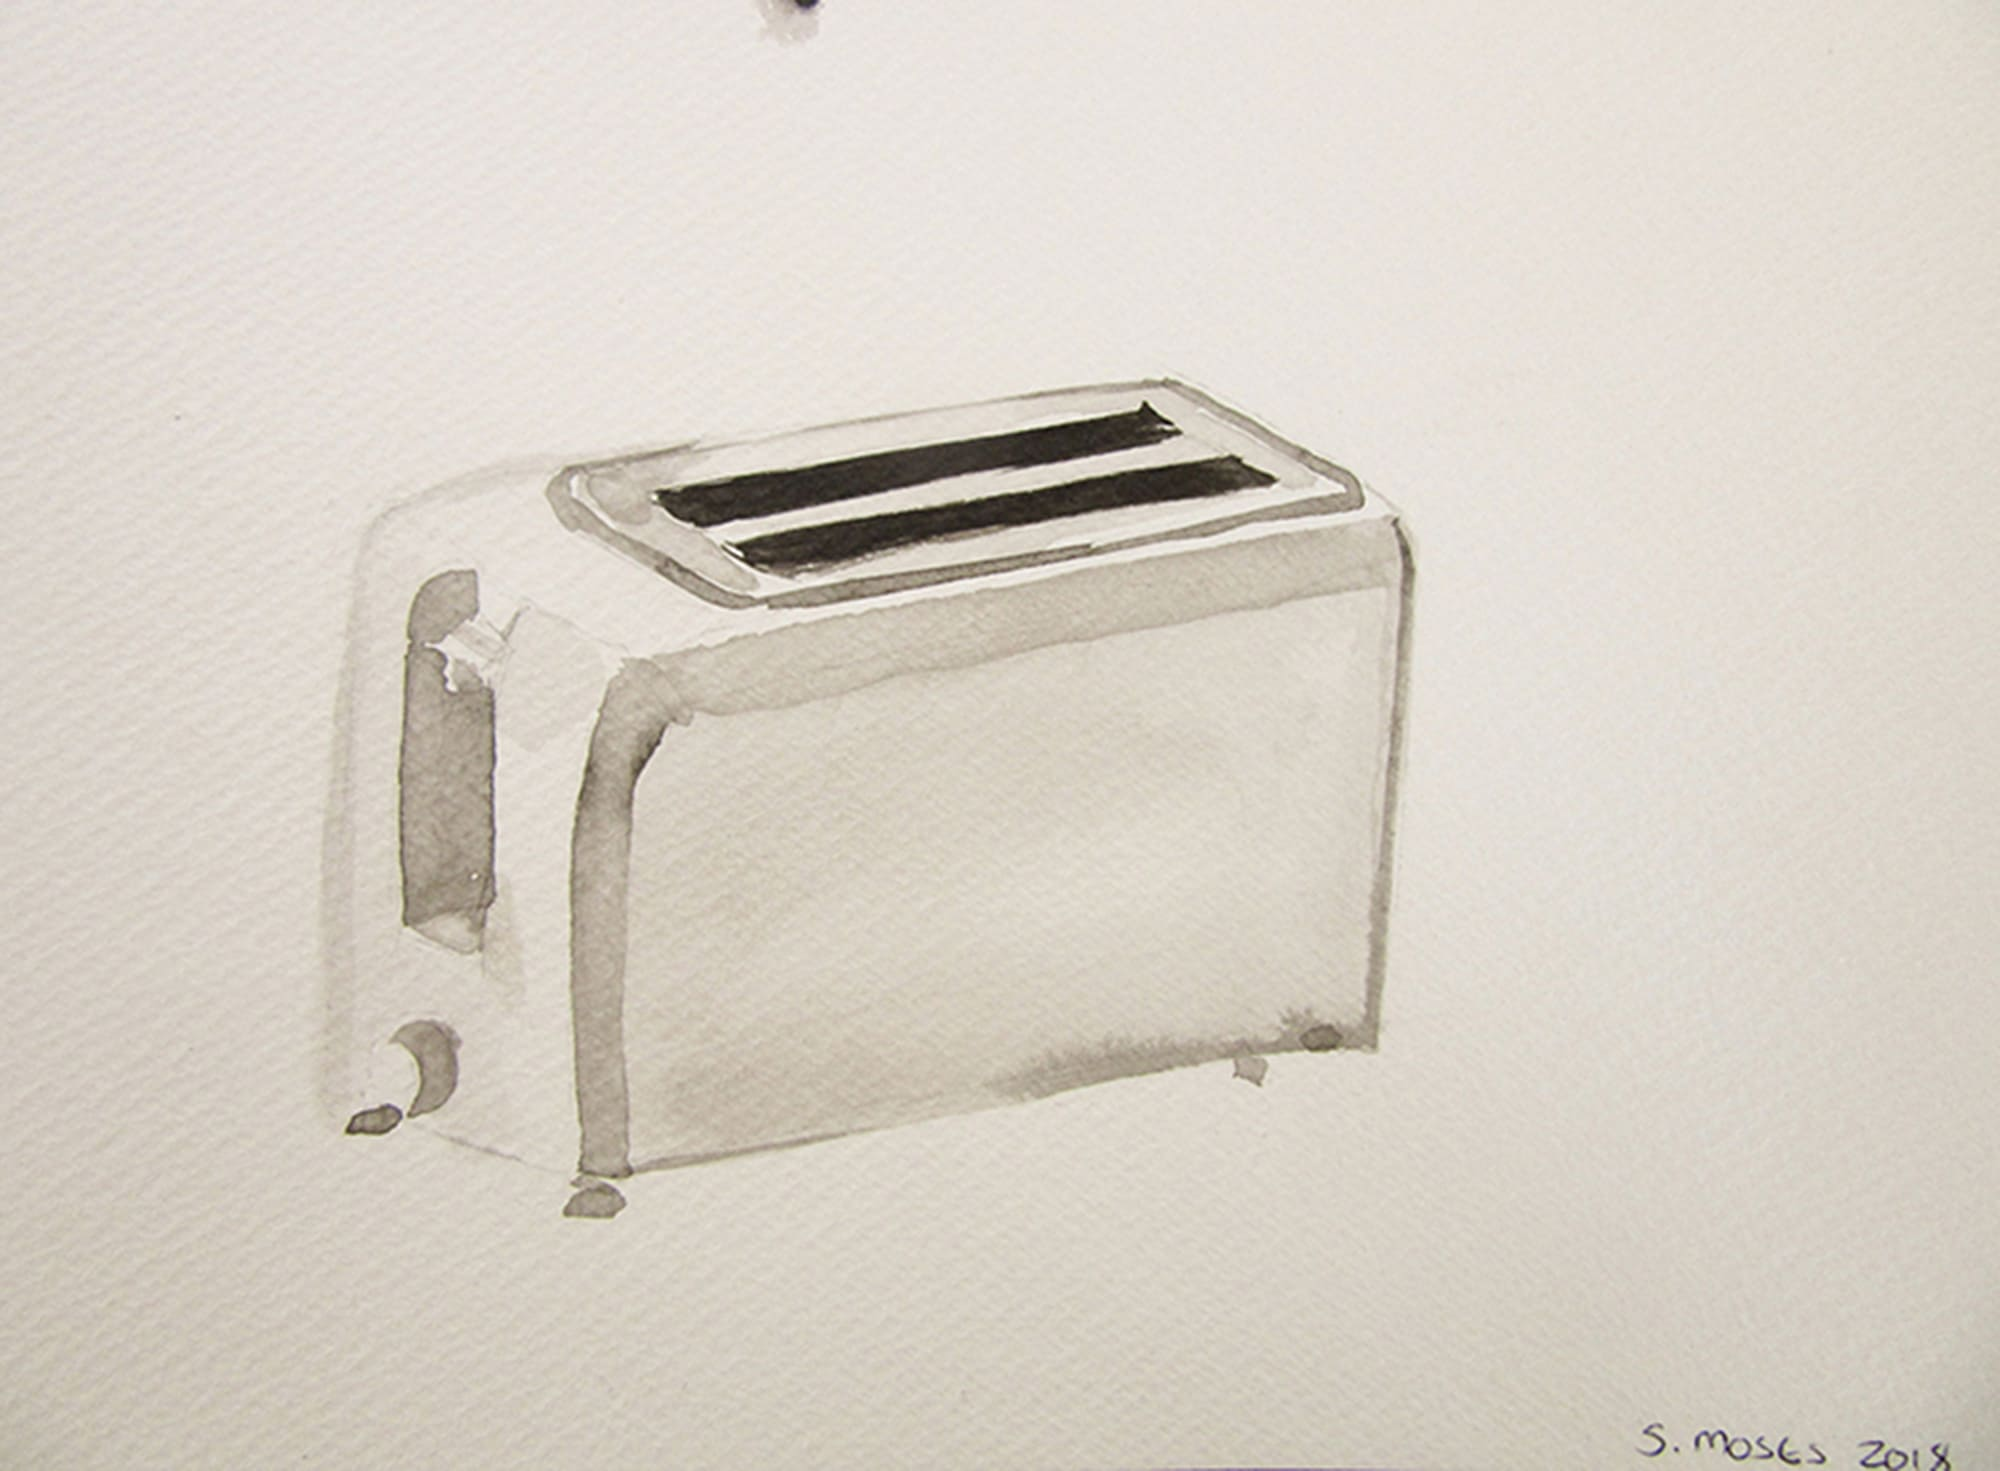 <span class=&#34;link fancybox-details-link&#34;><a href=&#34;/artists/49-sharon-moses/works/2500-sharon-moses-jolt-2018/&#34;>View Detail Page</a></span><div class=&#34;artist&#34;><strong>Sharon Moses</strong></div> <div class=&#34;title&#34;><em>Jolt</em>, 2018</div> <div class=&#34;medium&#34;>Ink On 300Gsm Cold Pressed Acid-Free Paper</div> <div class=&#34;dimensions&#34;>14.8cm x 21cm</div><div class=&#34;price&#34;>R500.00</div>